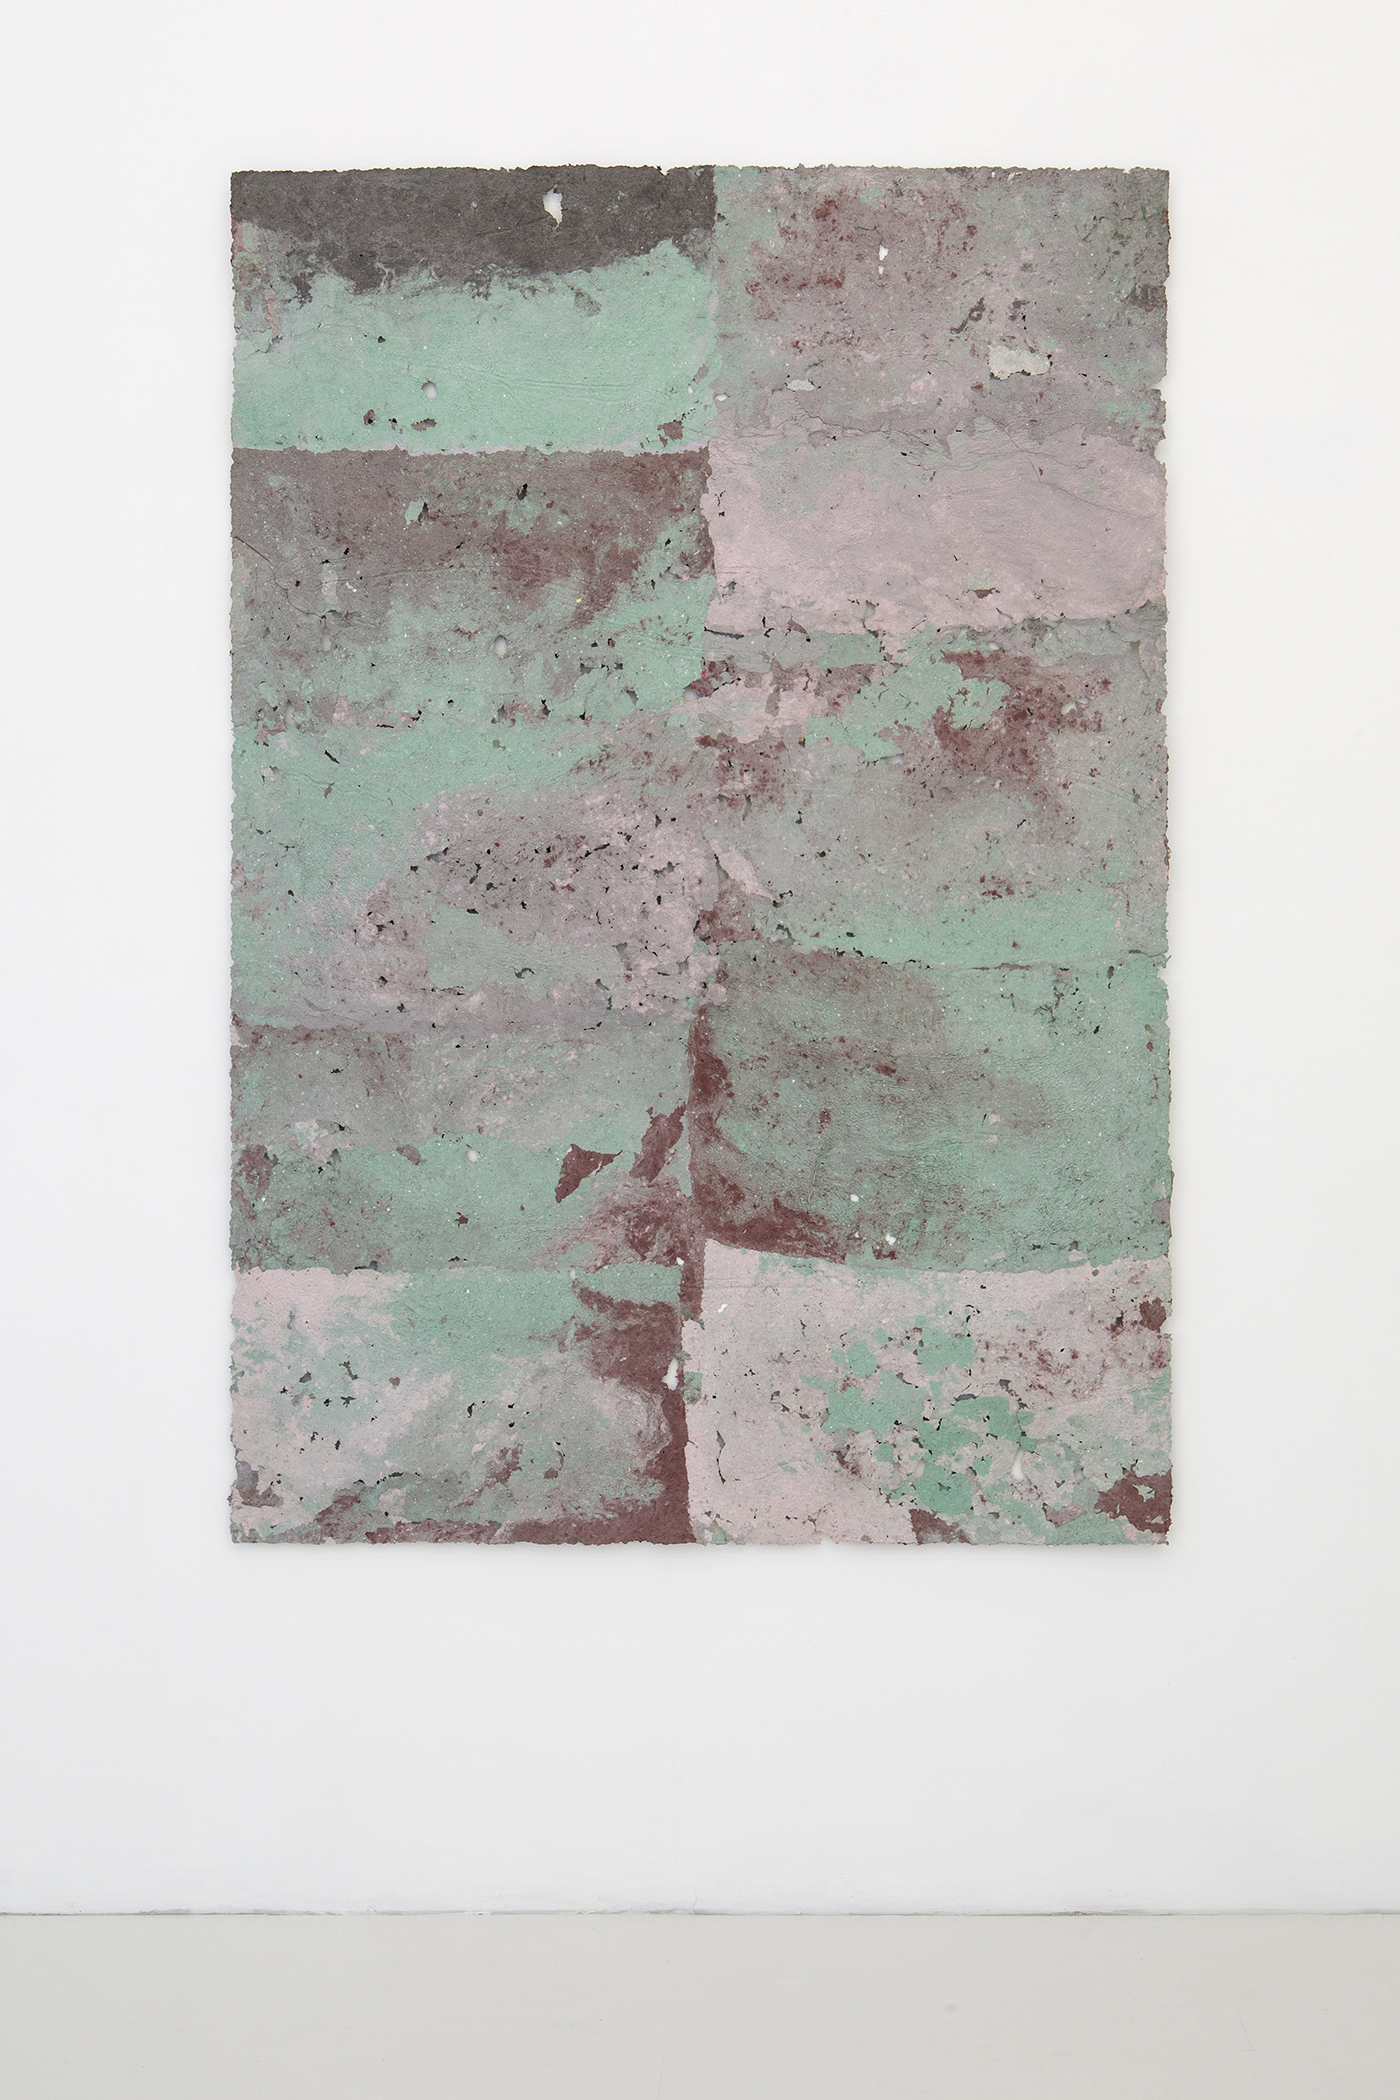 Fanny Hellgren, Faded, 2019 (Paper pulp and pigment, 168 x 114 cm)